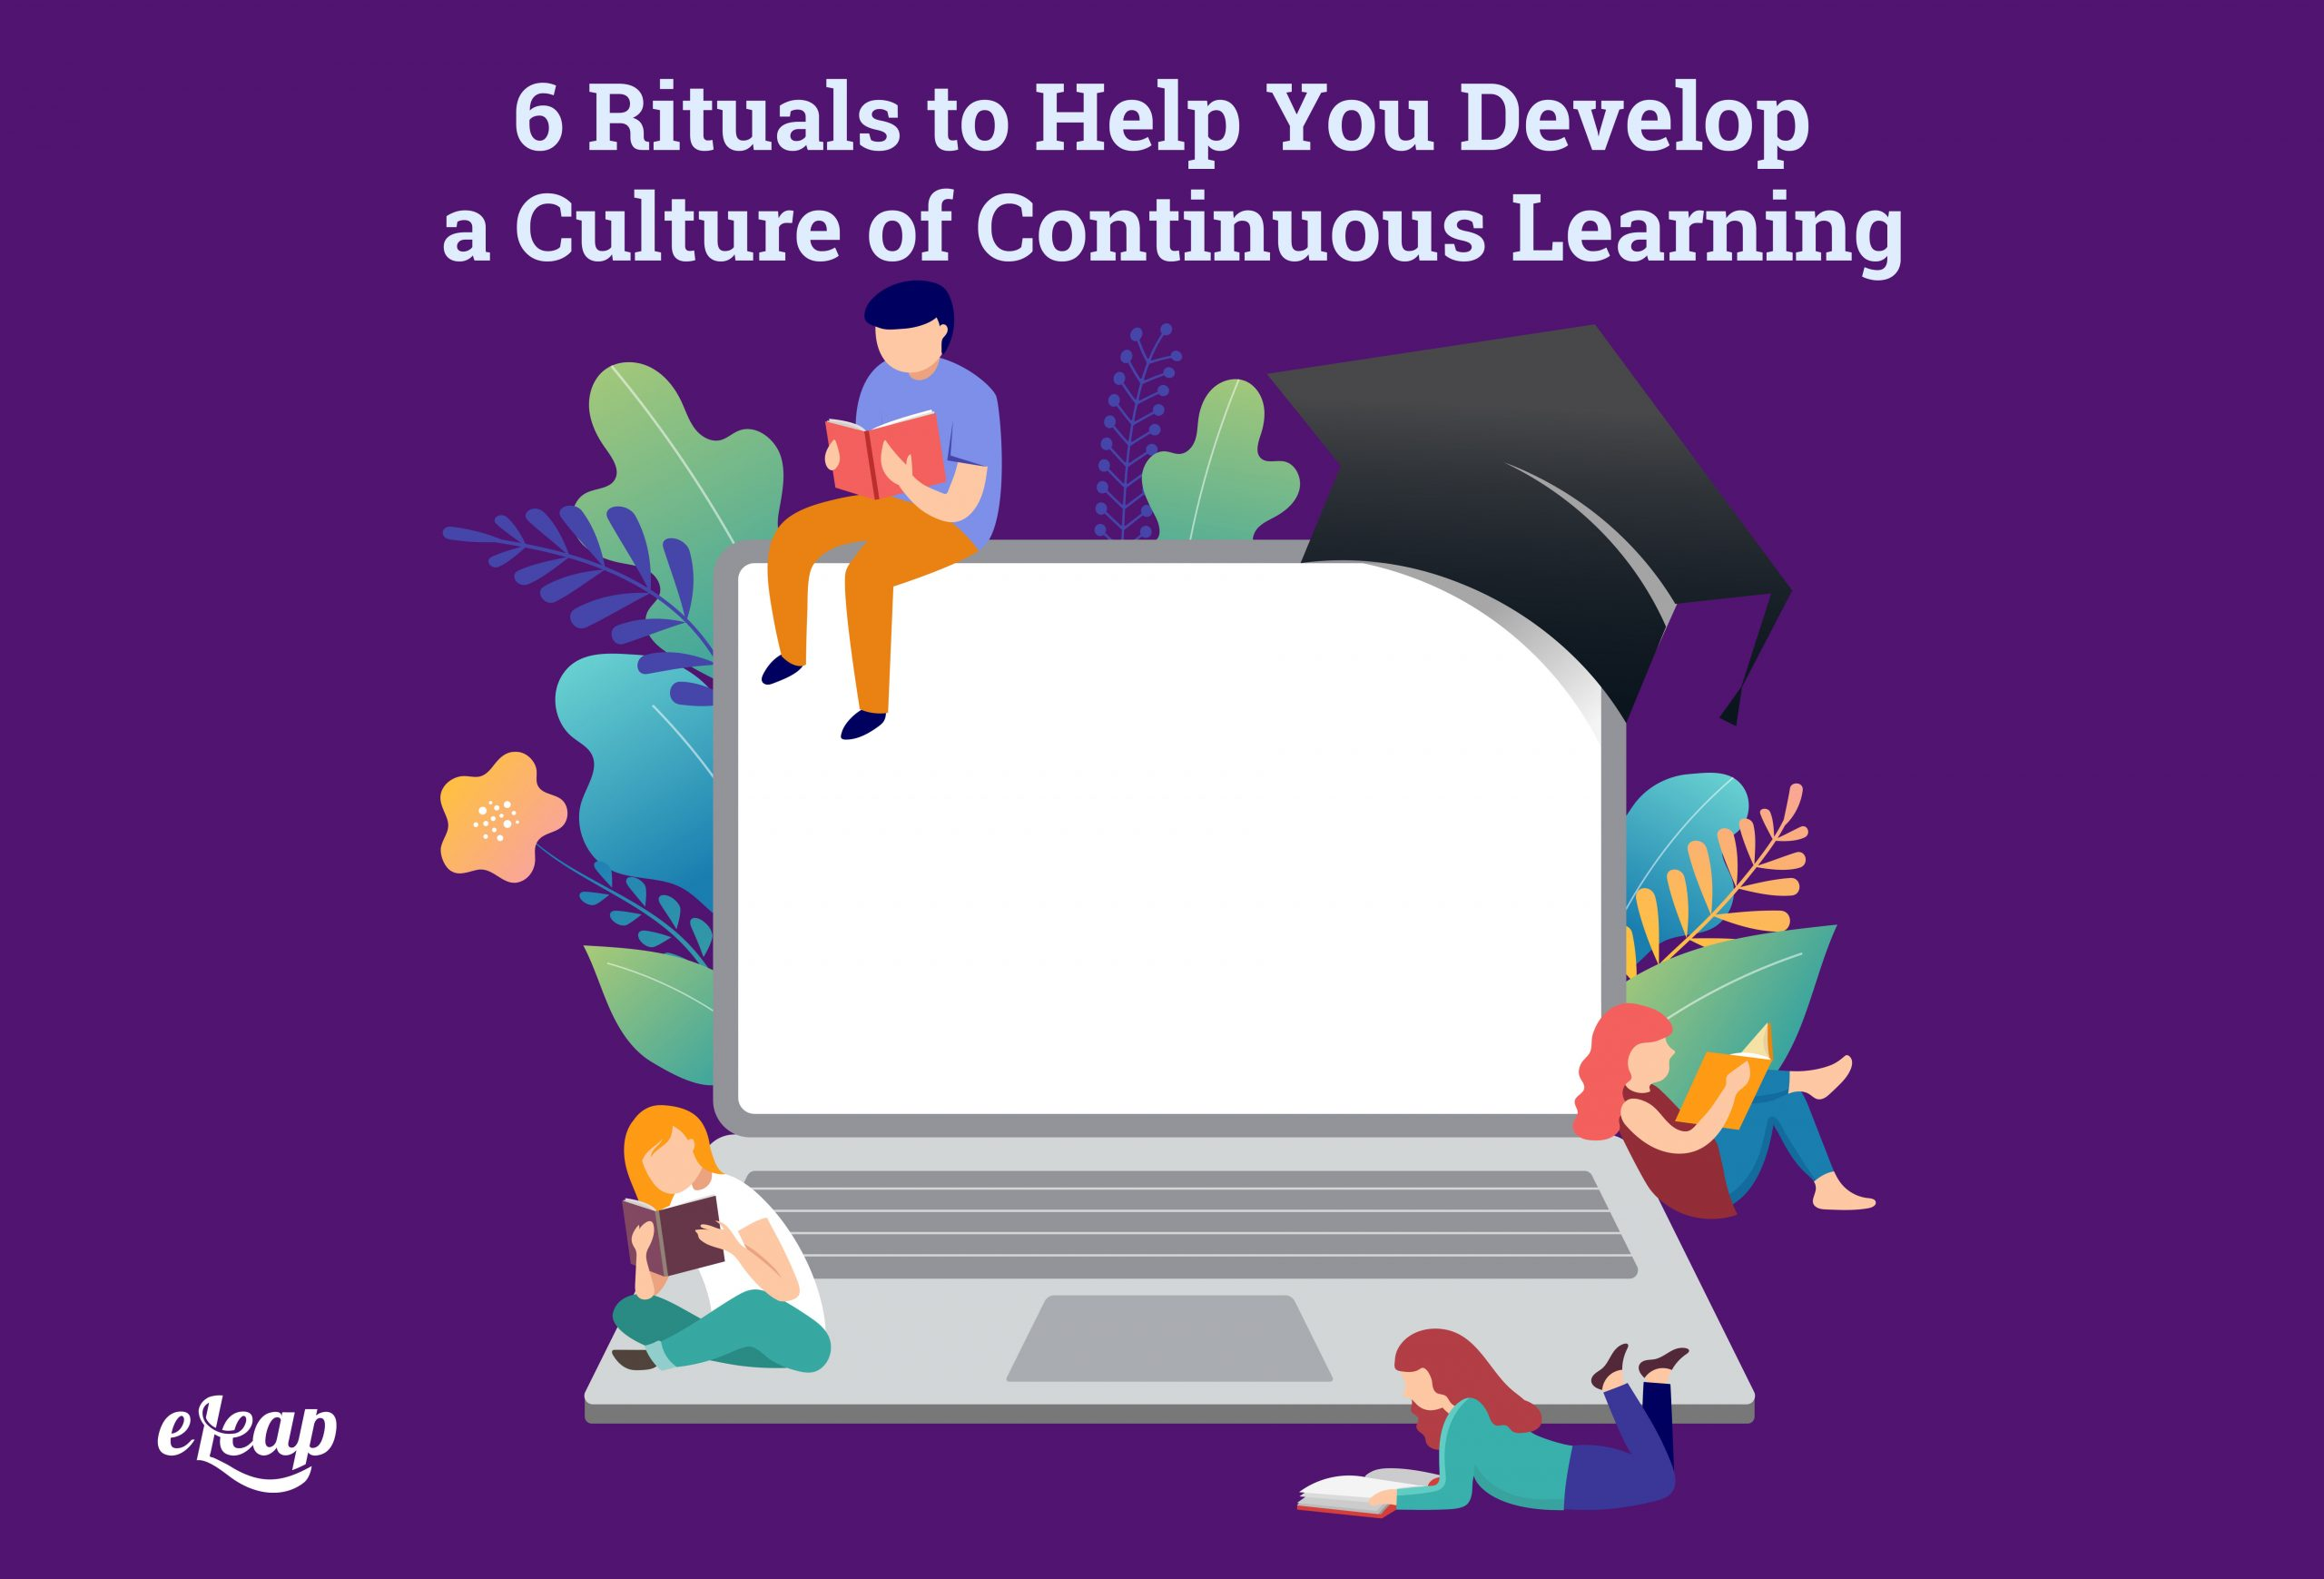 6 Rituals to Help You Develop a Culture of Continuous Learning